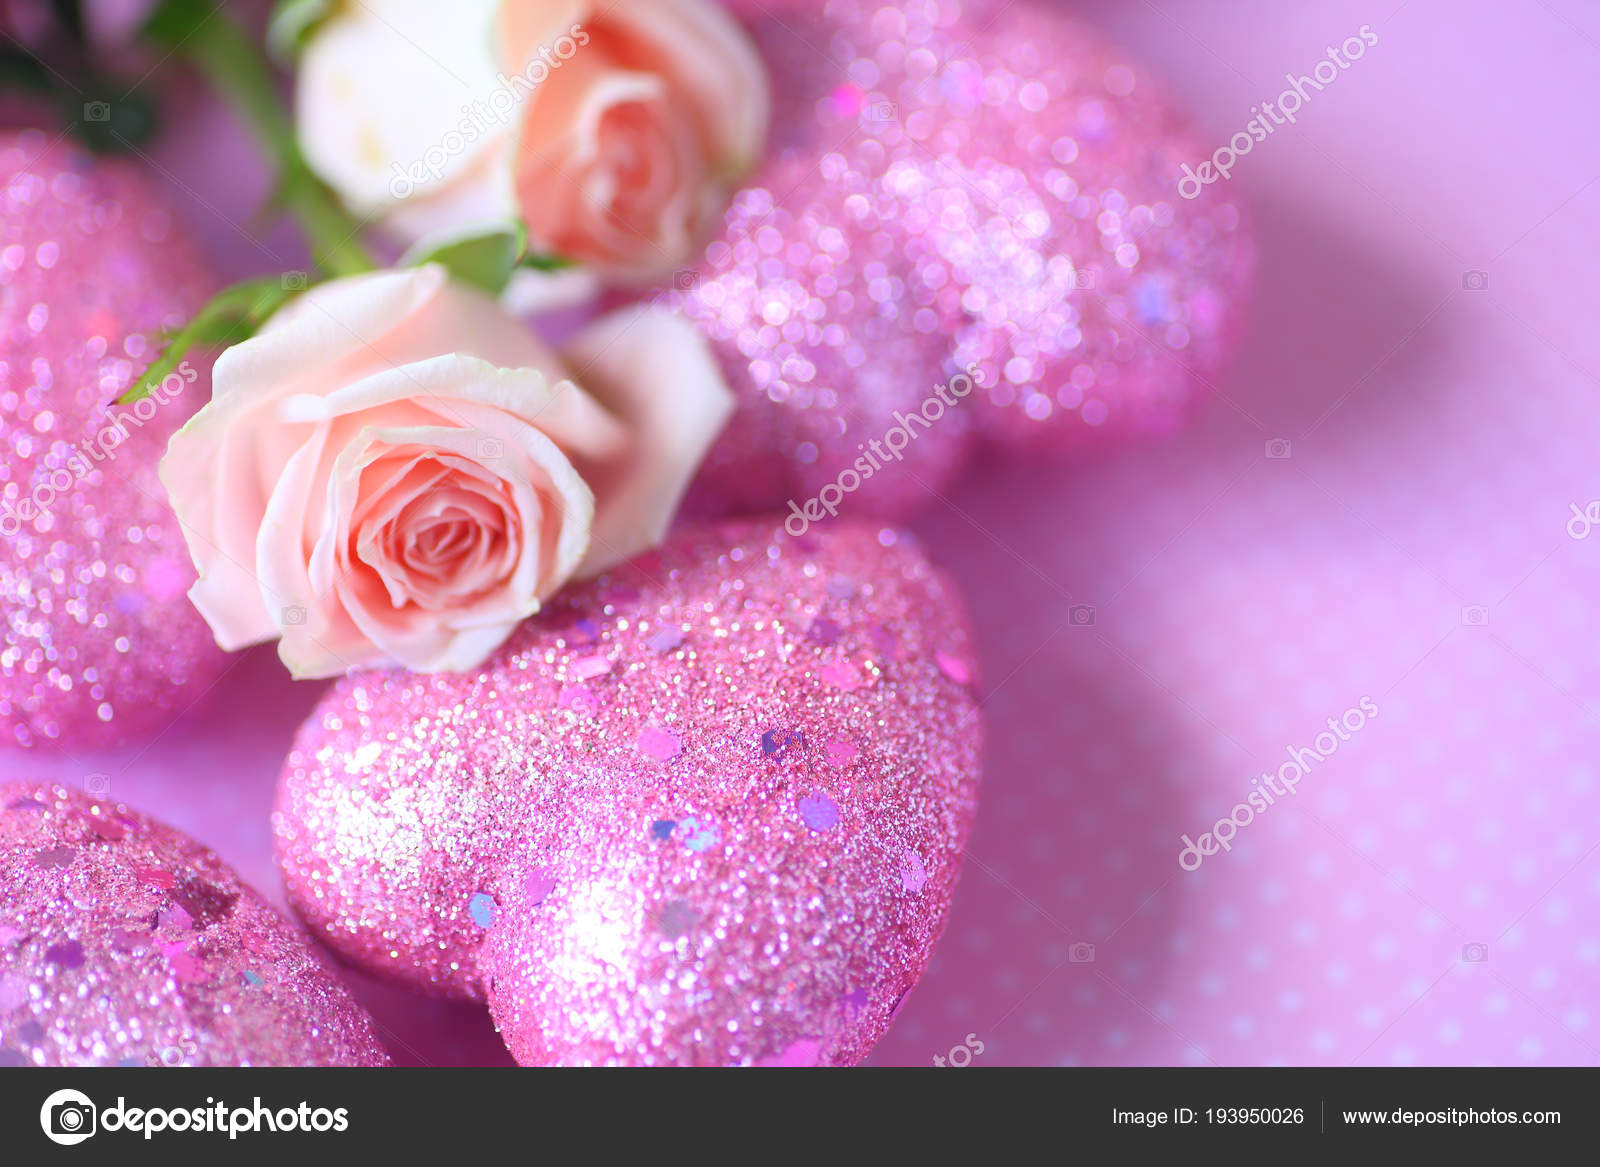 To acquire Roses pink and hearts pictures trends